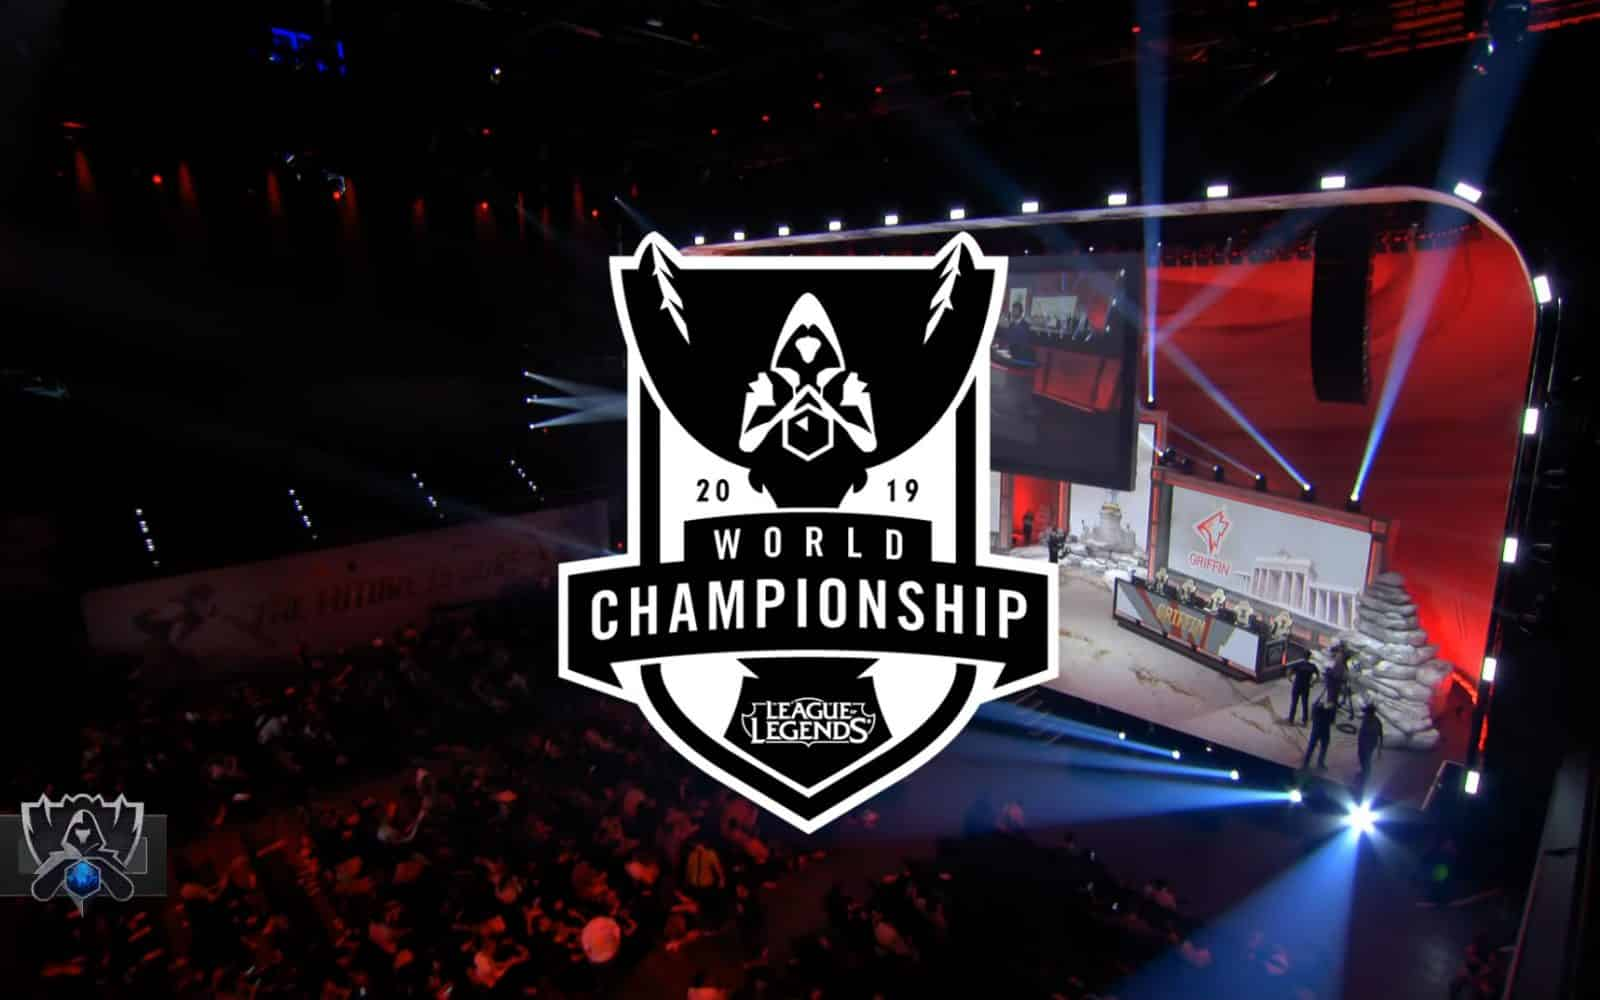 Griffin dominates Group A, wins tiebreaker for 1st vs G2 - Worlds 2019